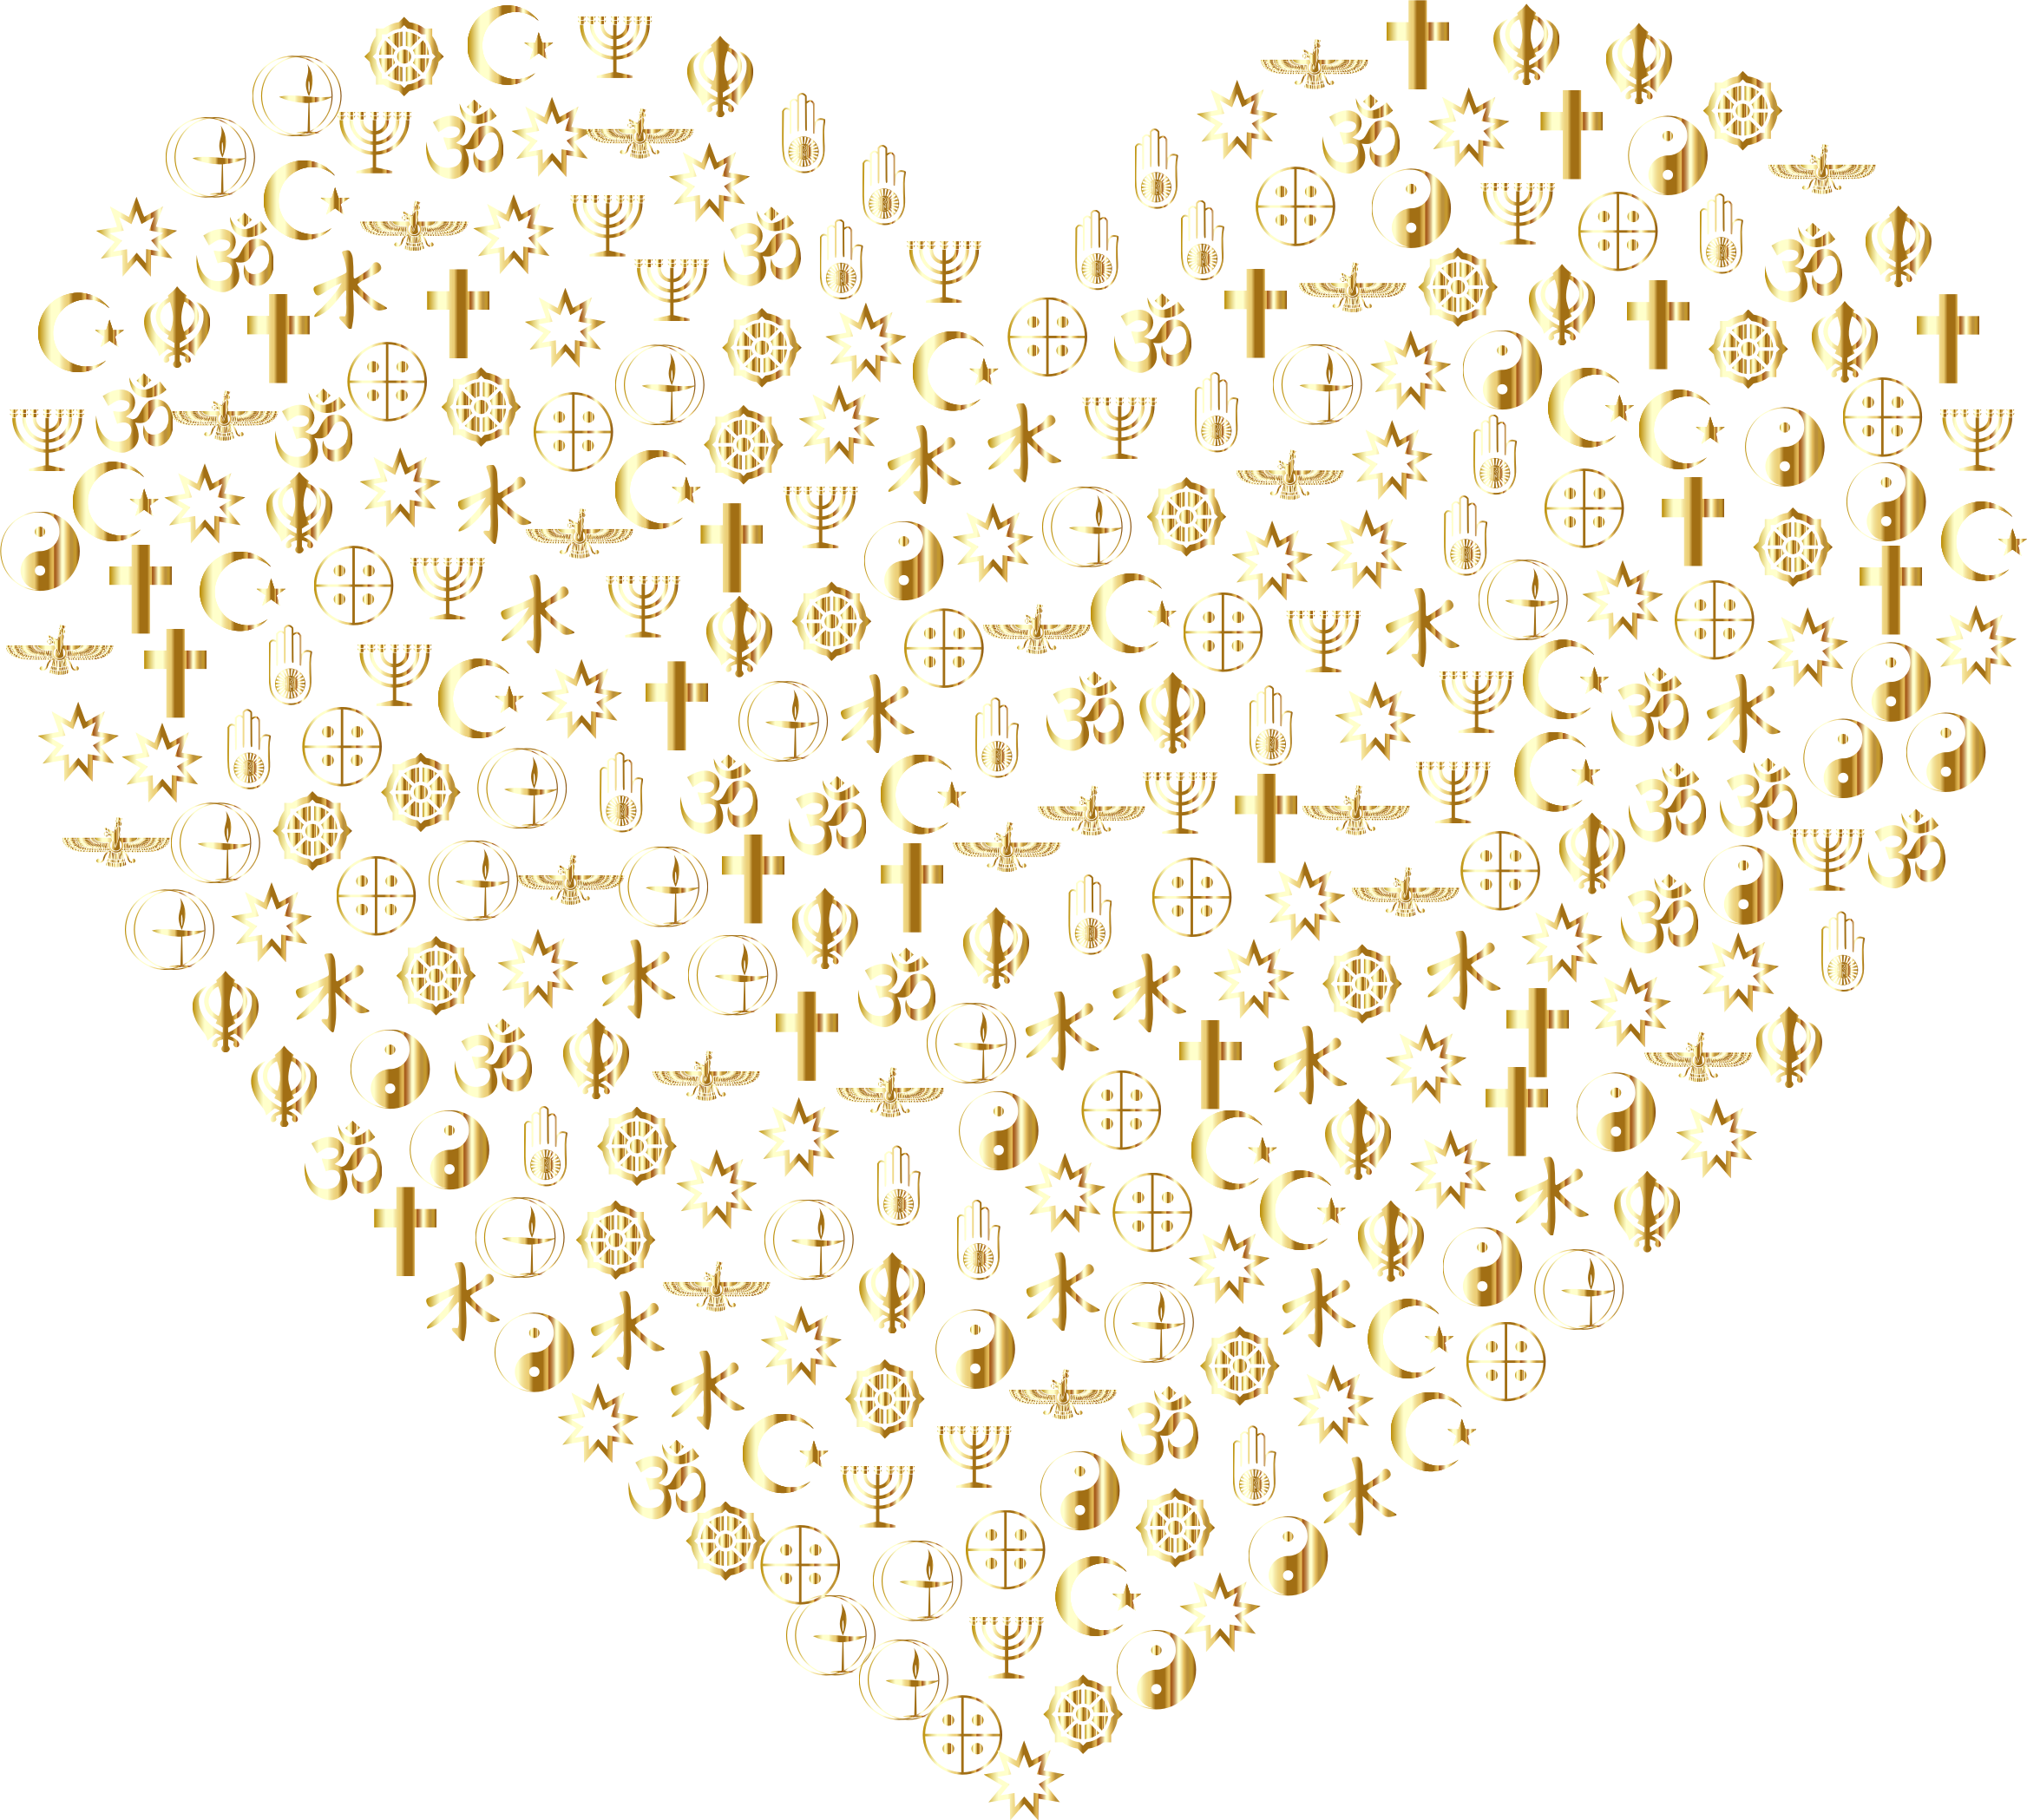 Religious Heart Filled Mark II Gold No BG by GDJ